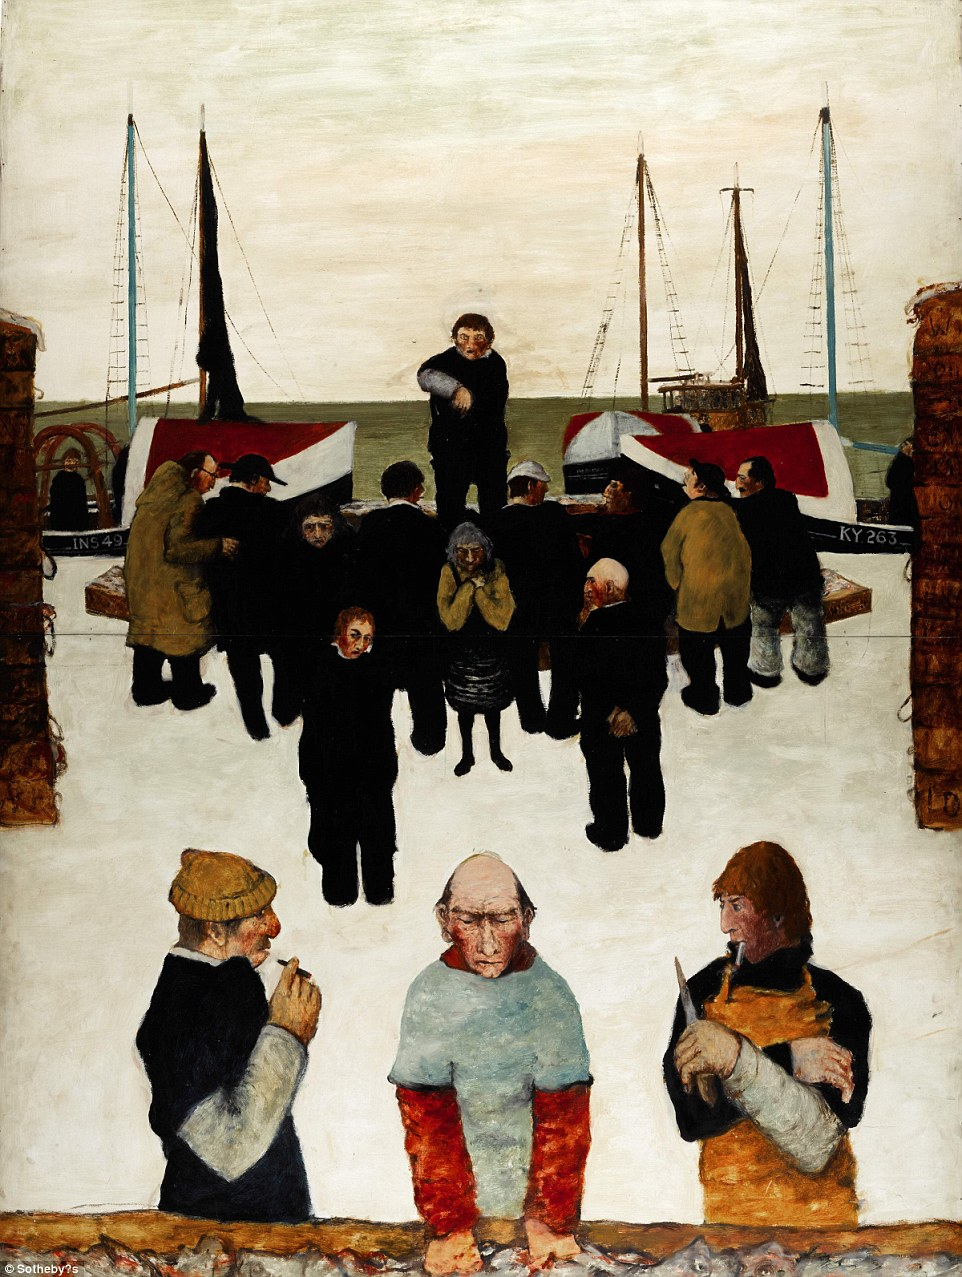 Bowie bought John Bellany's Fishermen in the Snow in 1993 as one of the first pieces he bought at auction. The singer was fascinated by Bellany's upbringingin the traditional fishing community of Port Seton, Scotland. This piece will fetch between £12,000 and £18,000